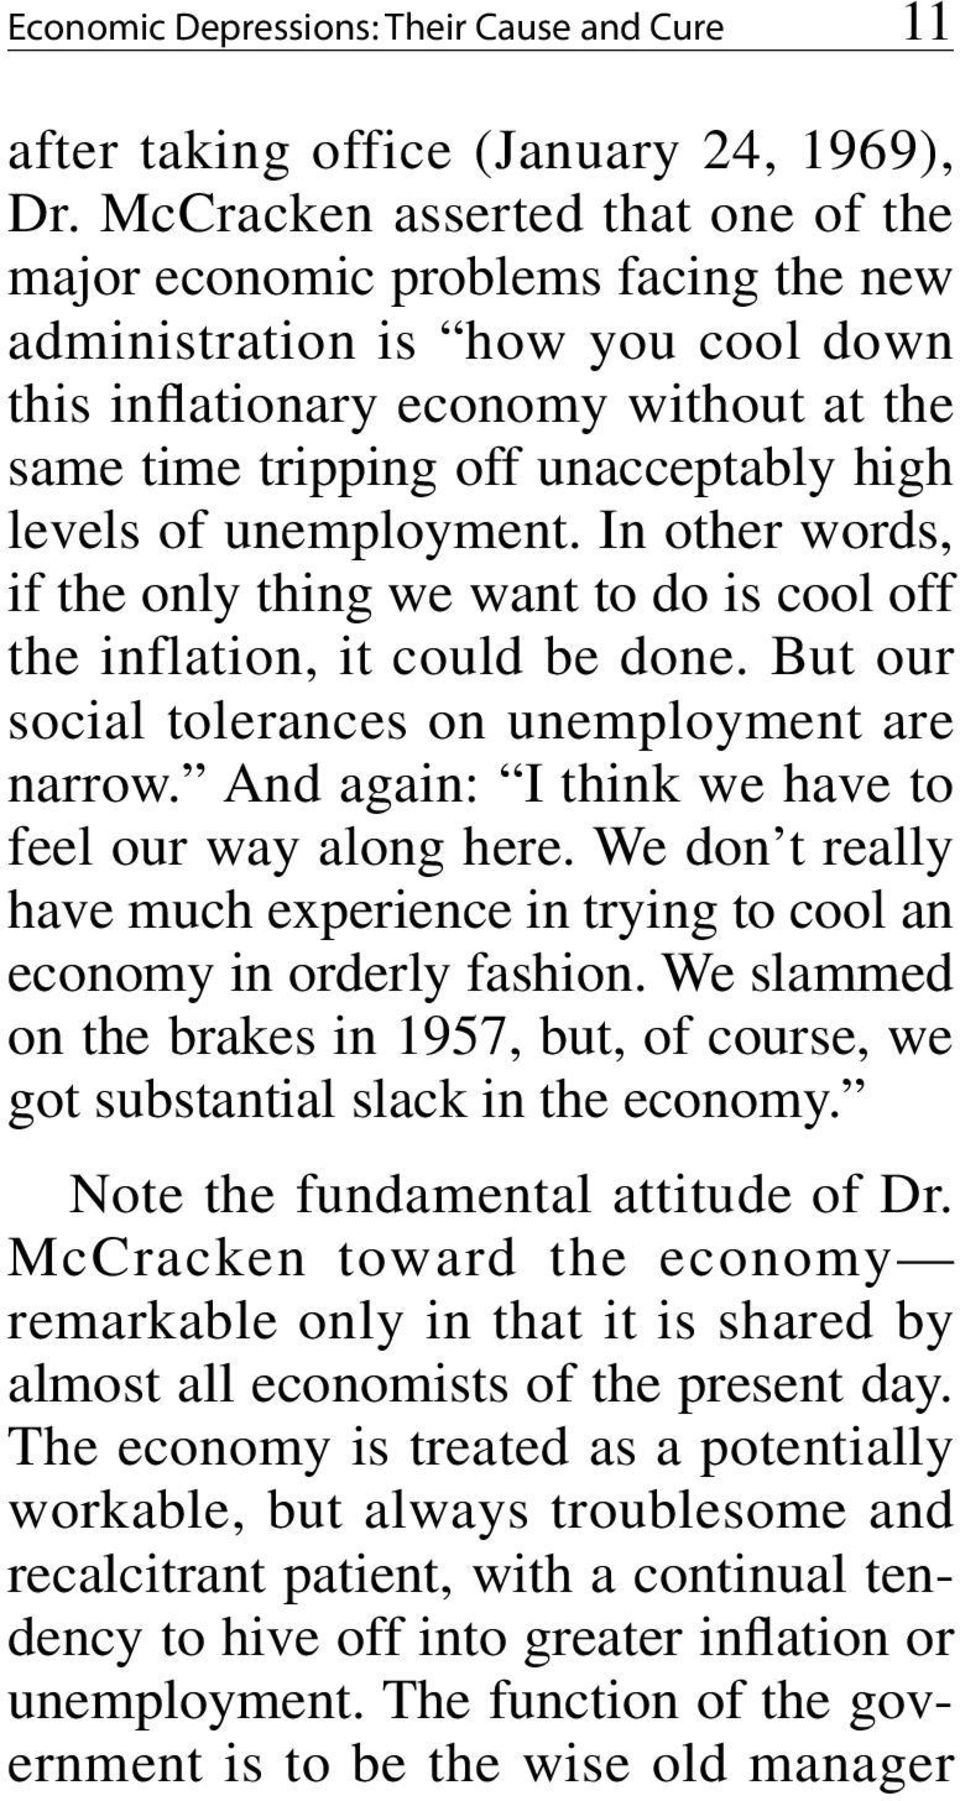 of unemployment. In other words, if the only thing we want to do is cool off the inflation, it could be done. But our social tolerances on unemployment are narrow.